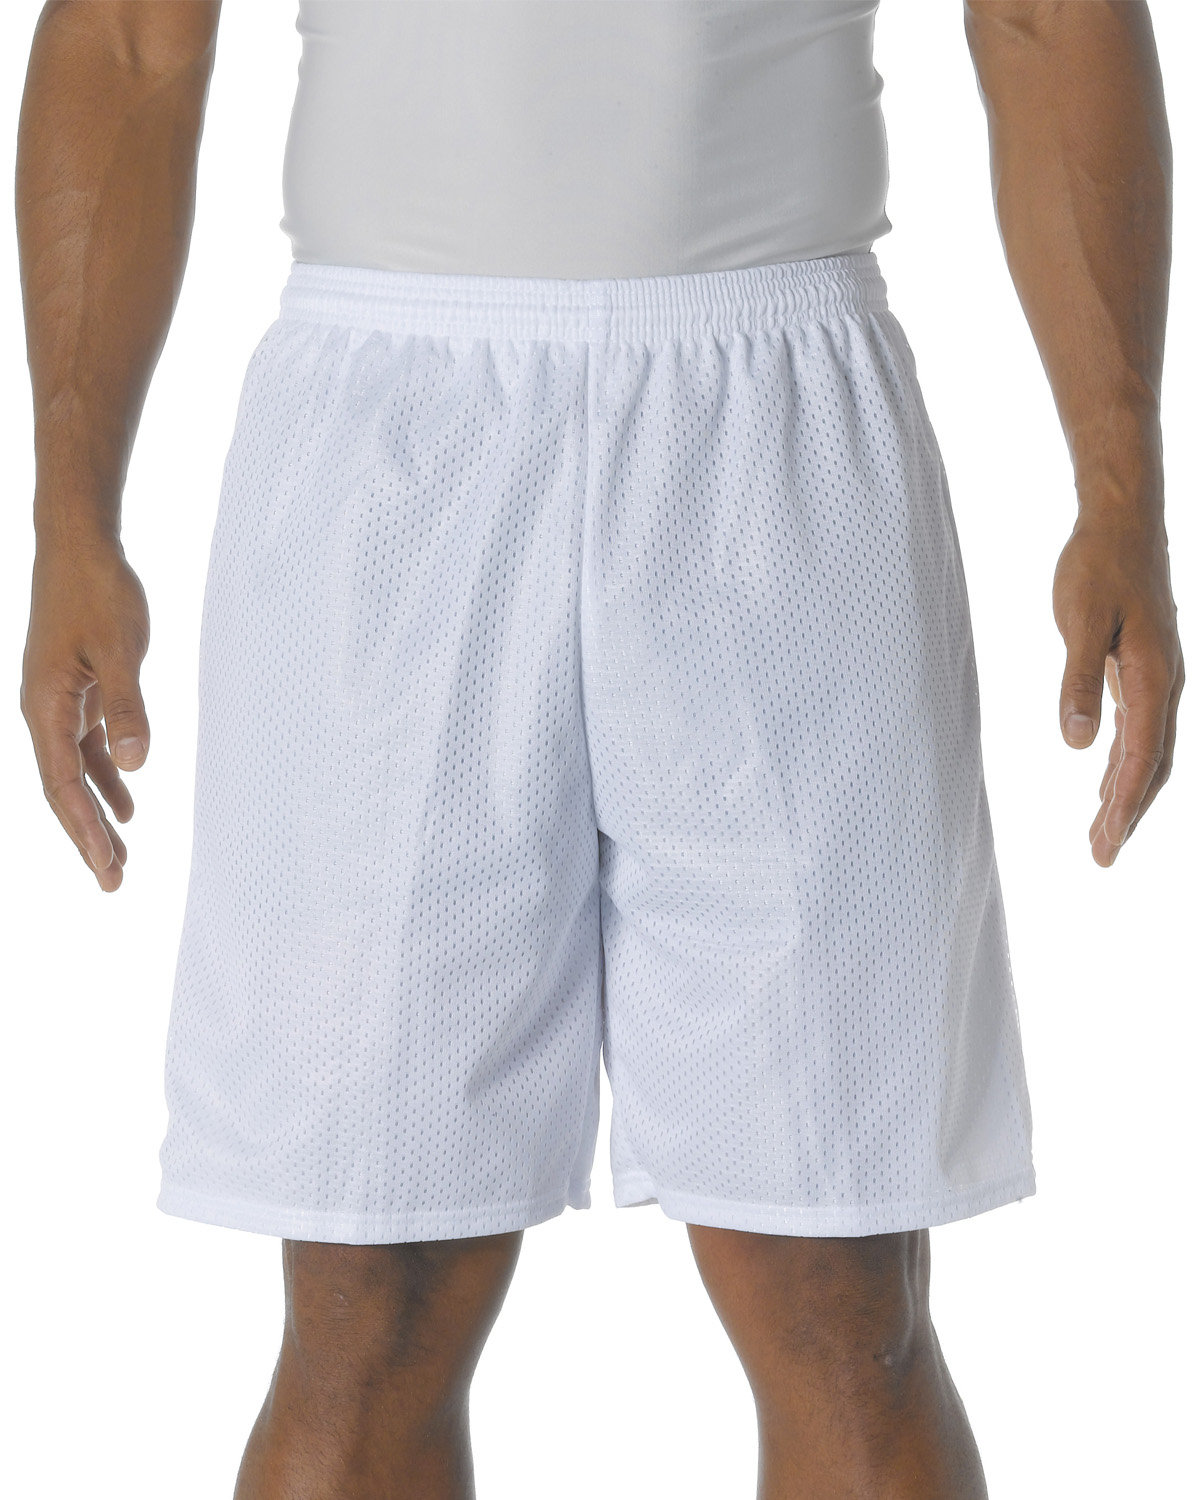 A4 Adult Tricot Mesh Short WHITE